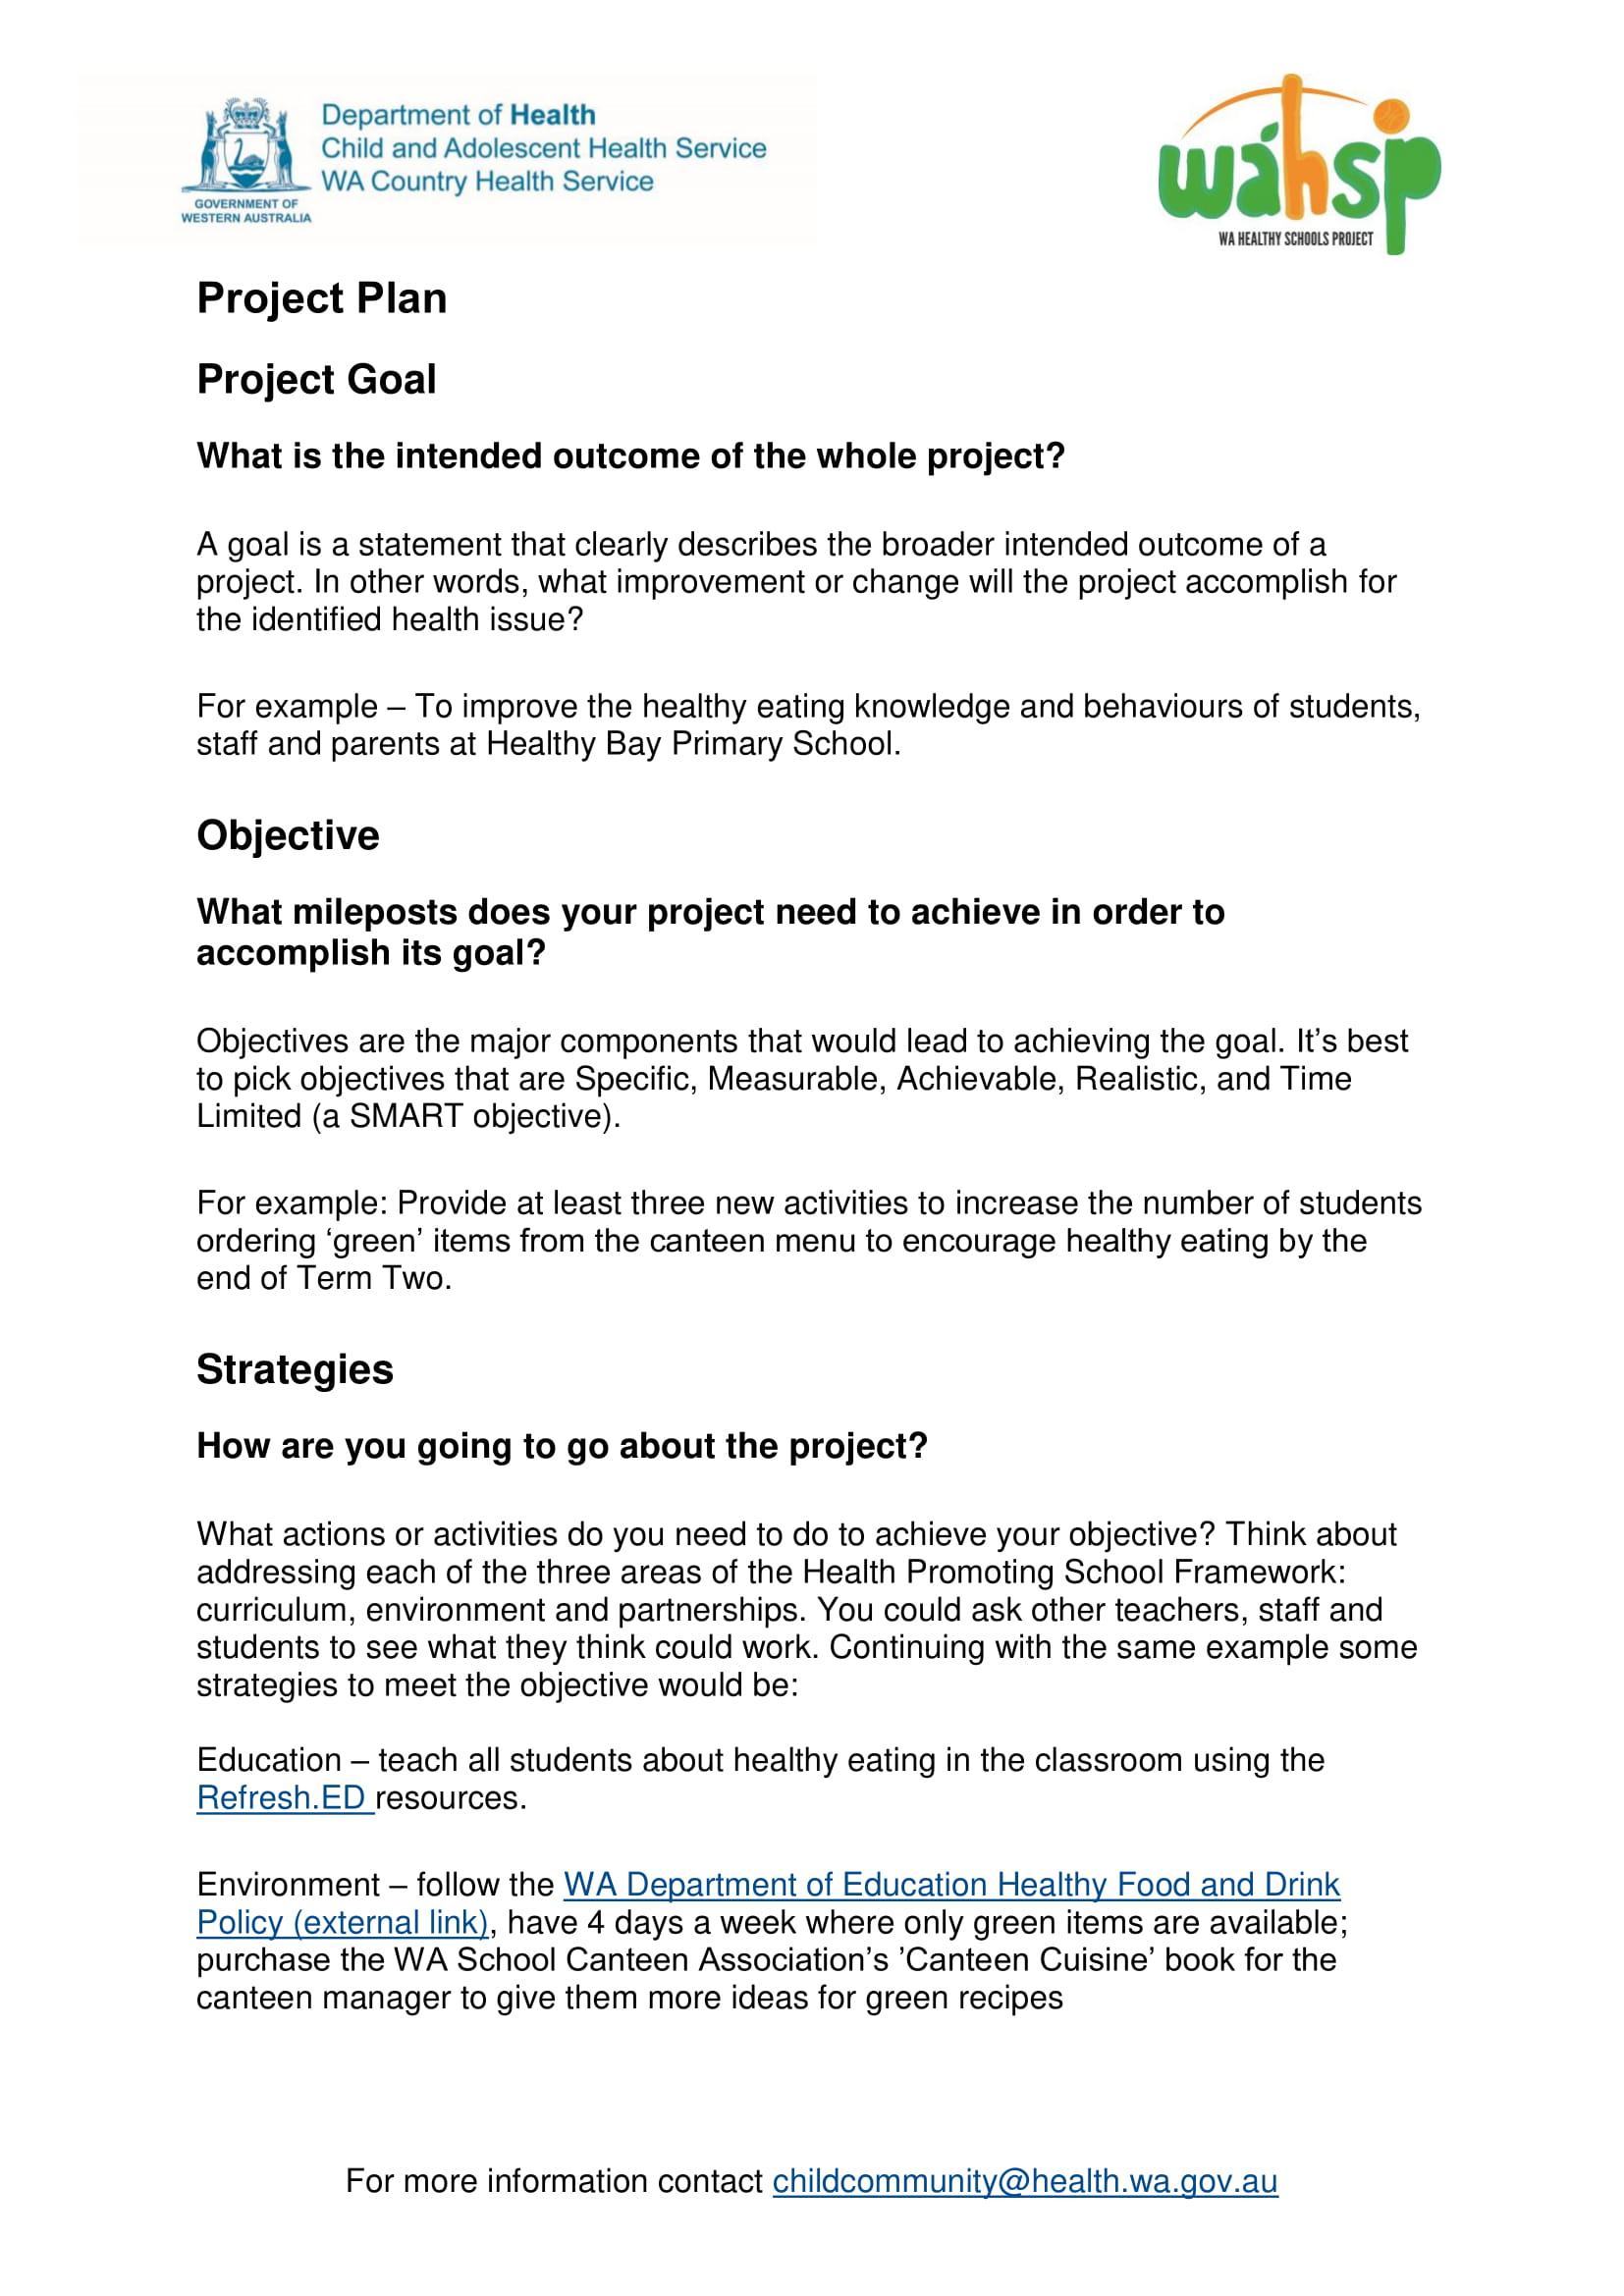 basic project action plan example 1